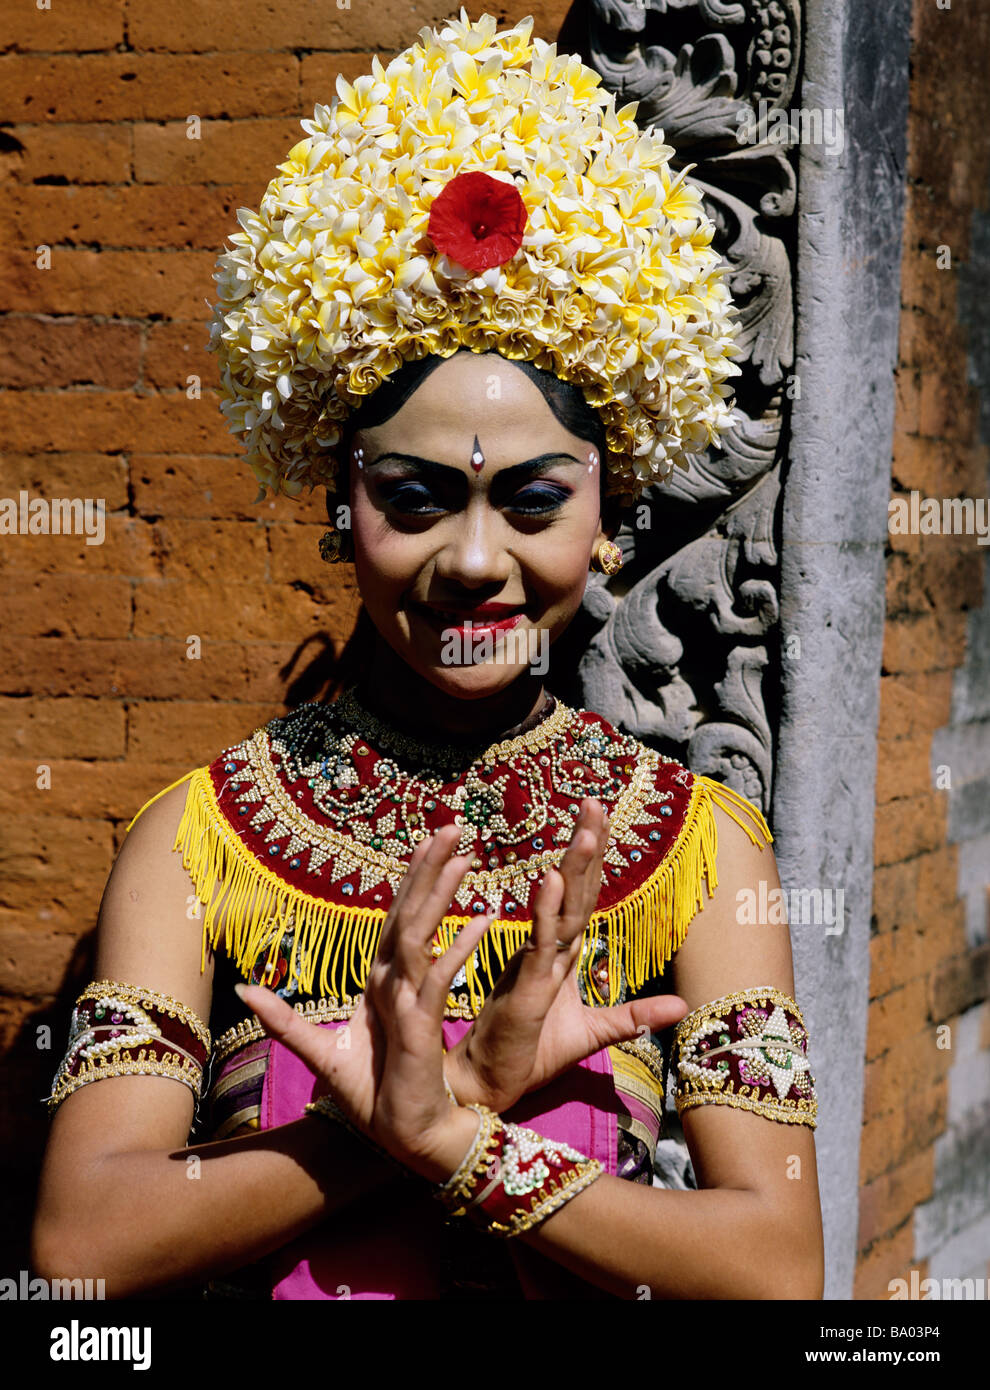 Bali traditional costume photo # How To Make A Car Battery Hold A Charge - Battery Cca